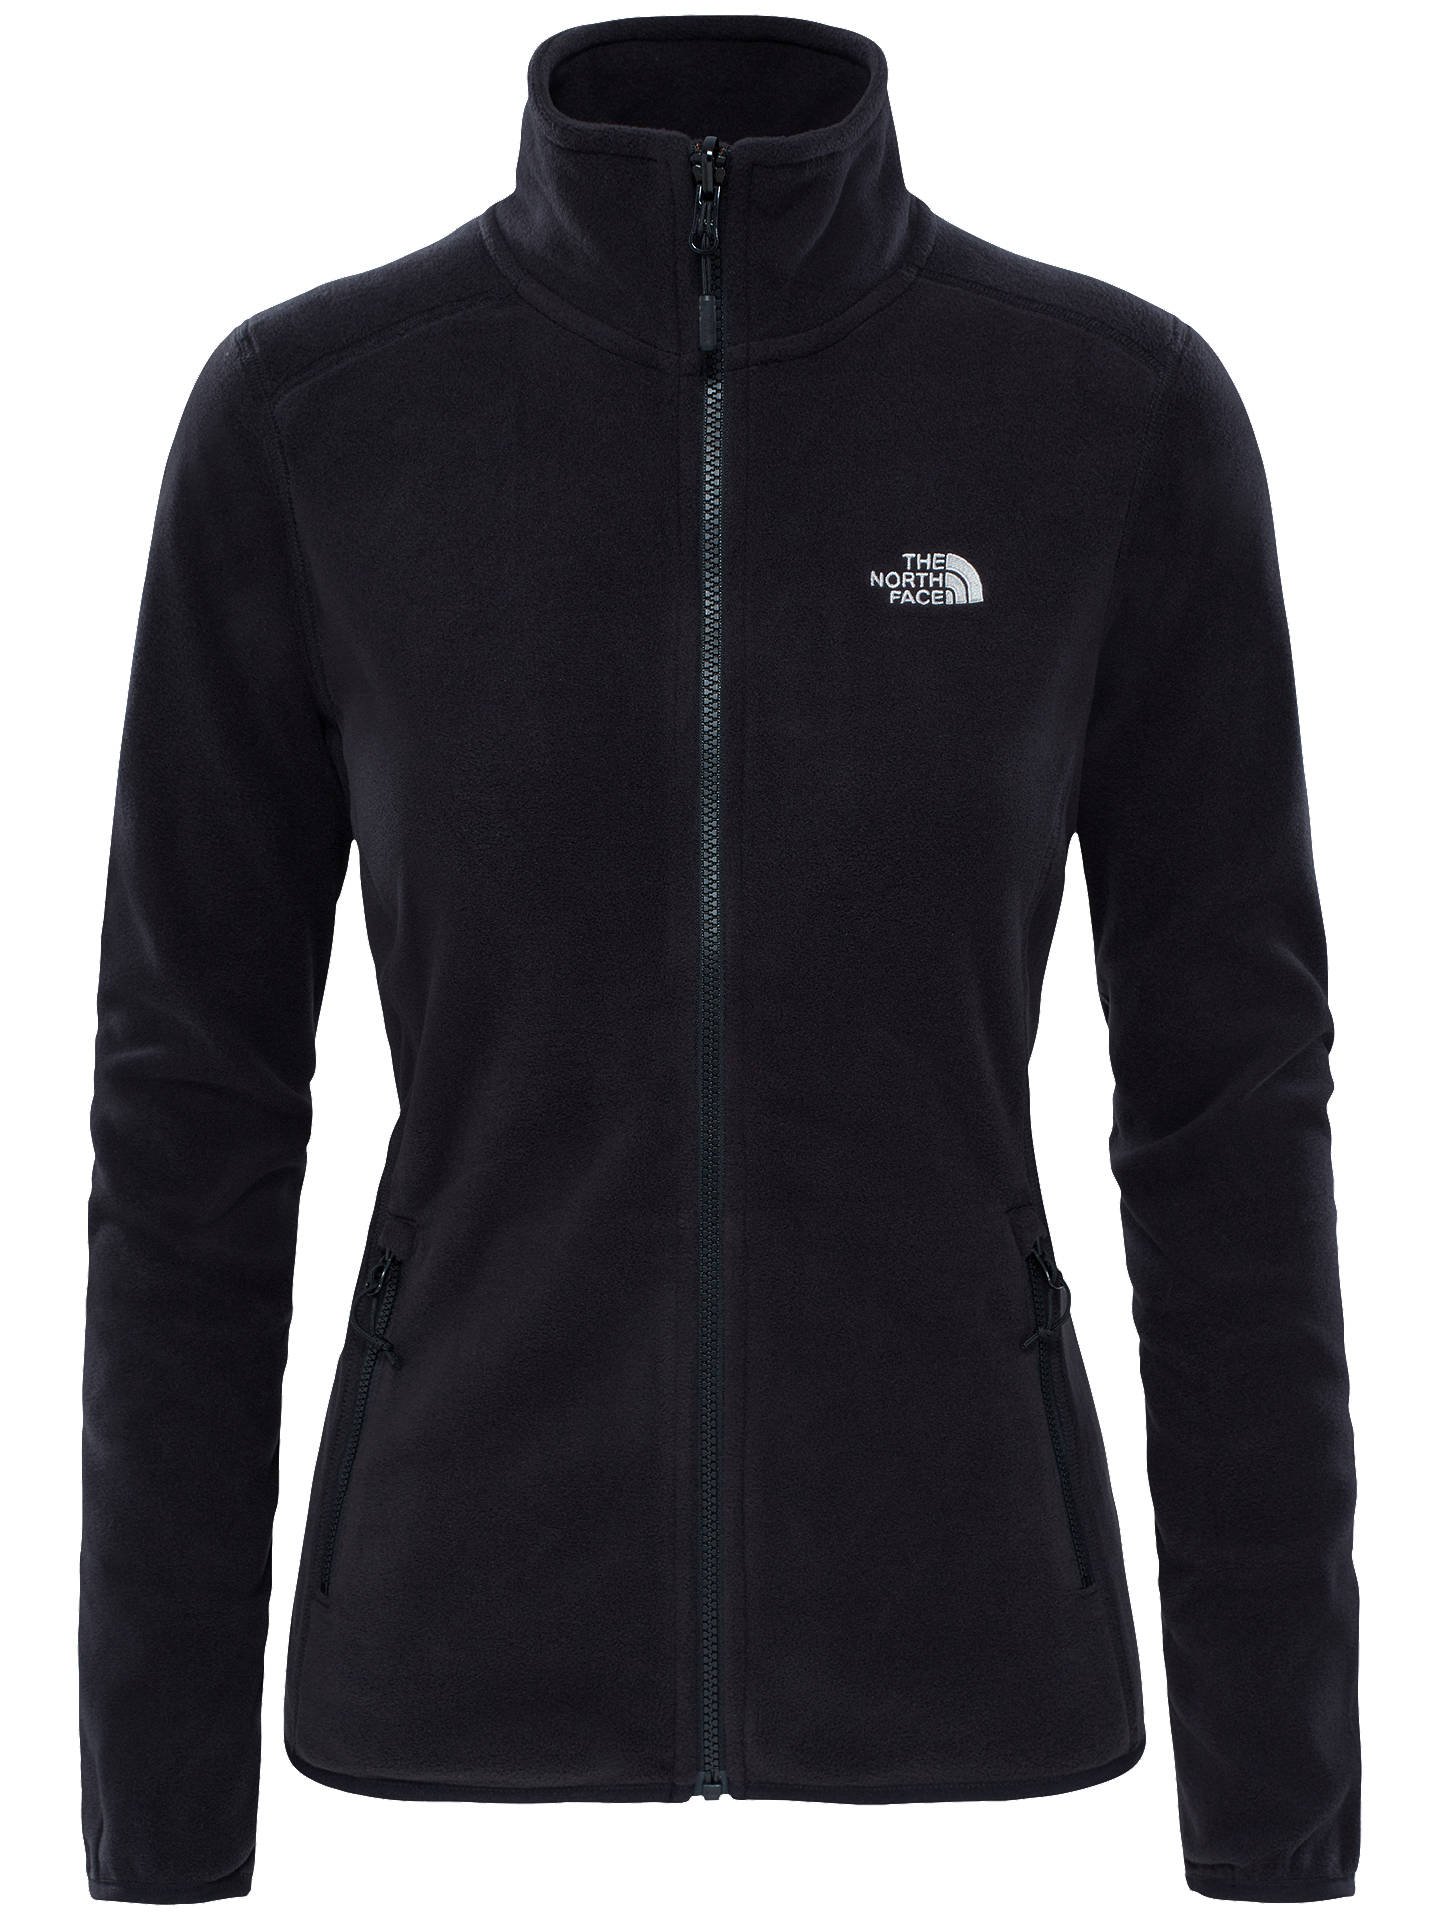 3afbc6b4c The North Face 100 Glacier Full Zip Women's Fleece, Black/Grey